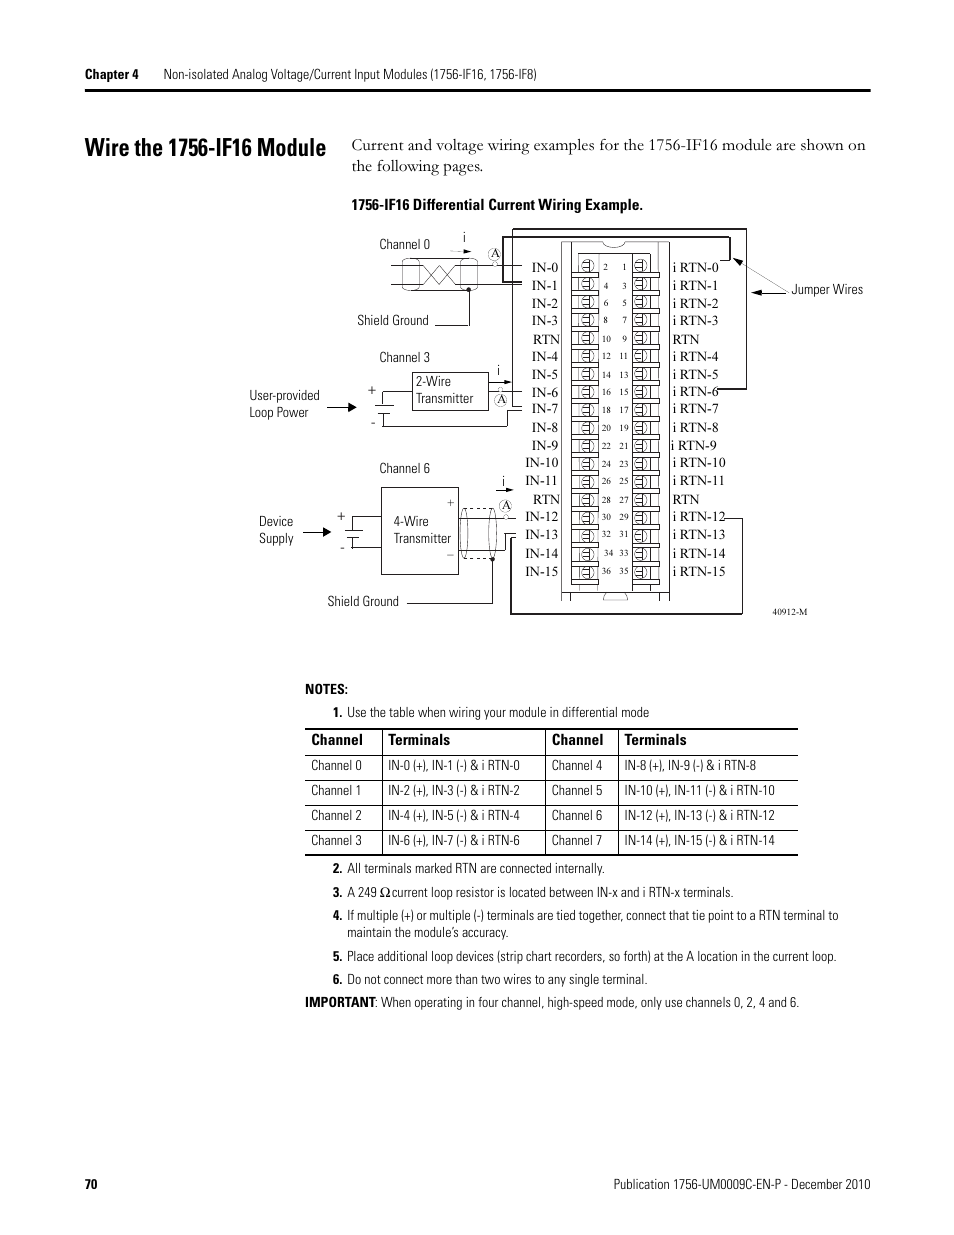 rockwell automation 1756 xxxx controllogix analog i_o modules page70 wire the 1756 if16 module rockwell automation 1756 xxxx 1756 ia16 wiring diagram at mifinder.co